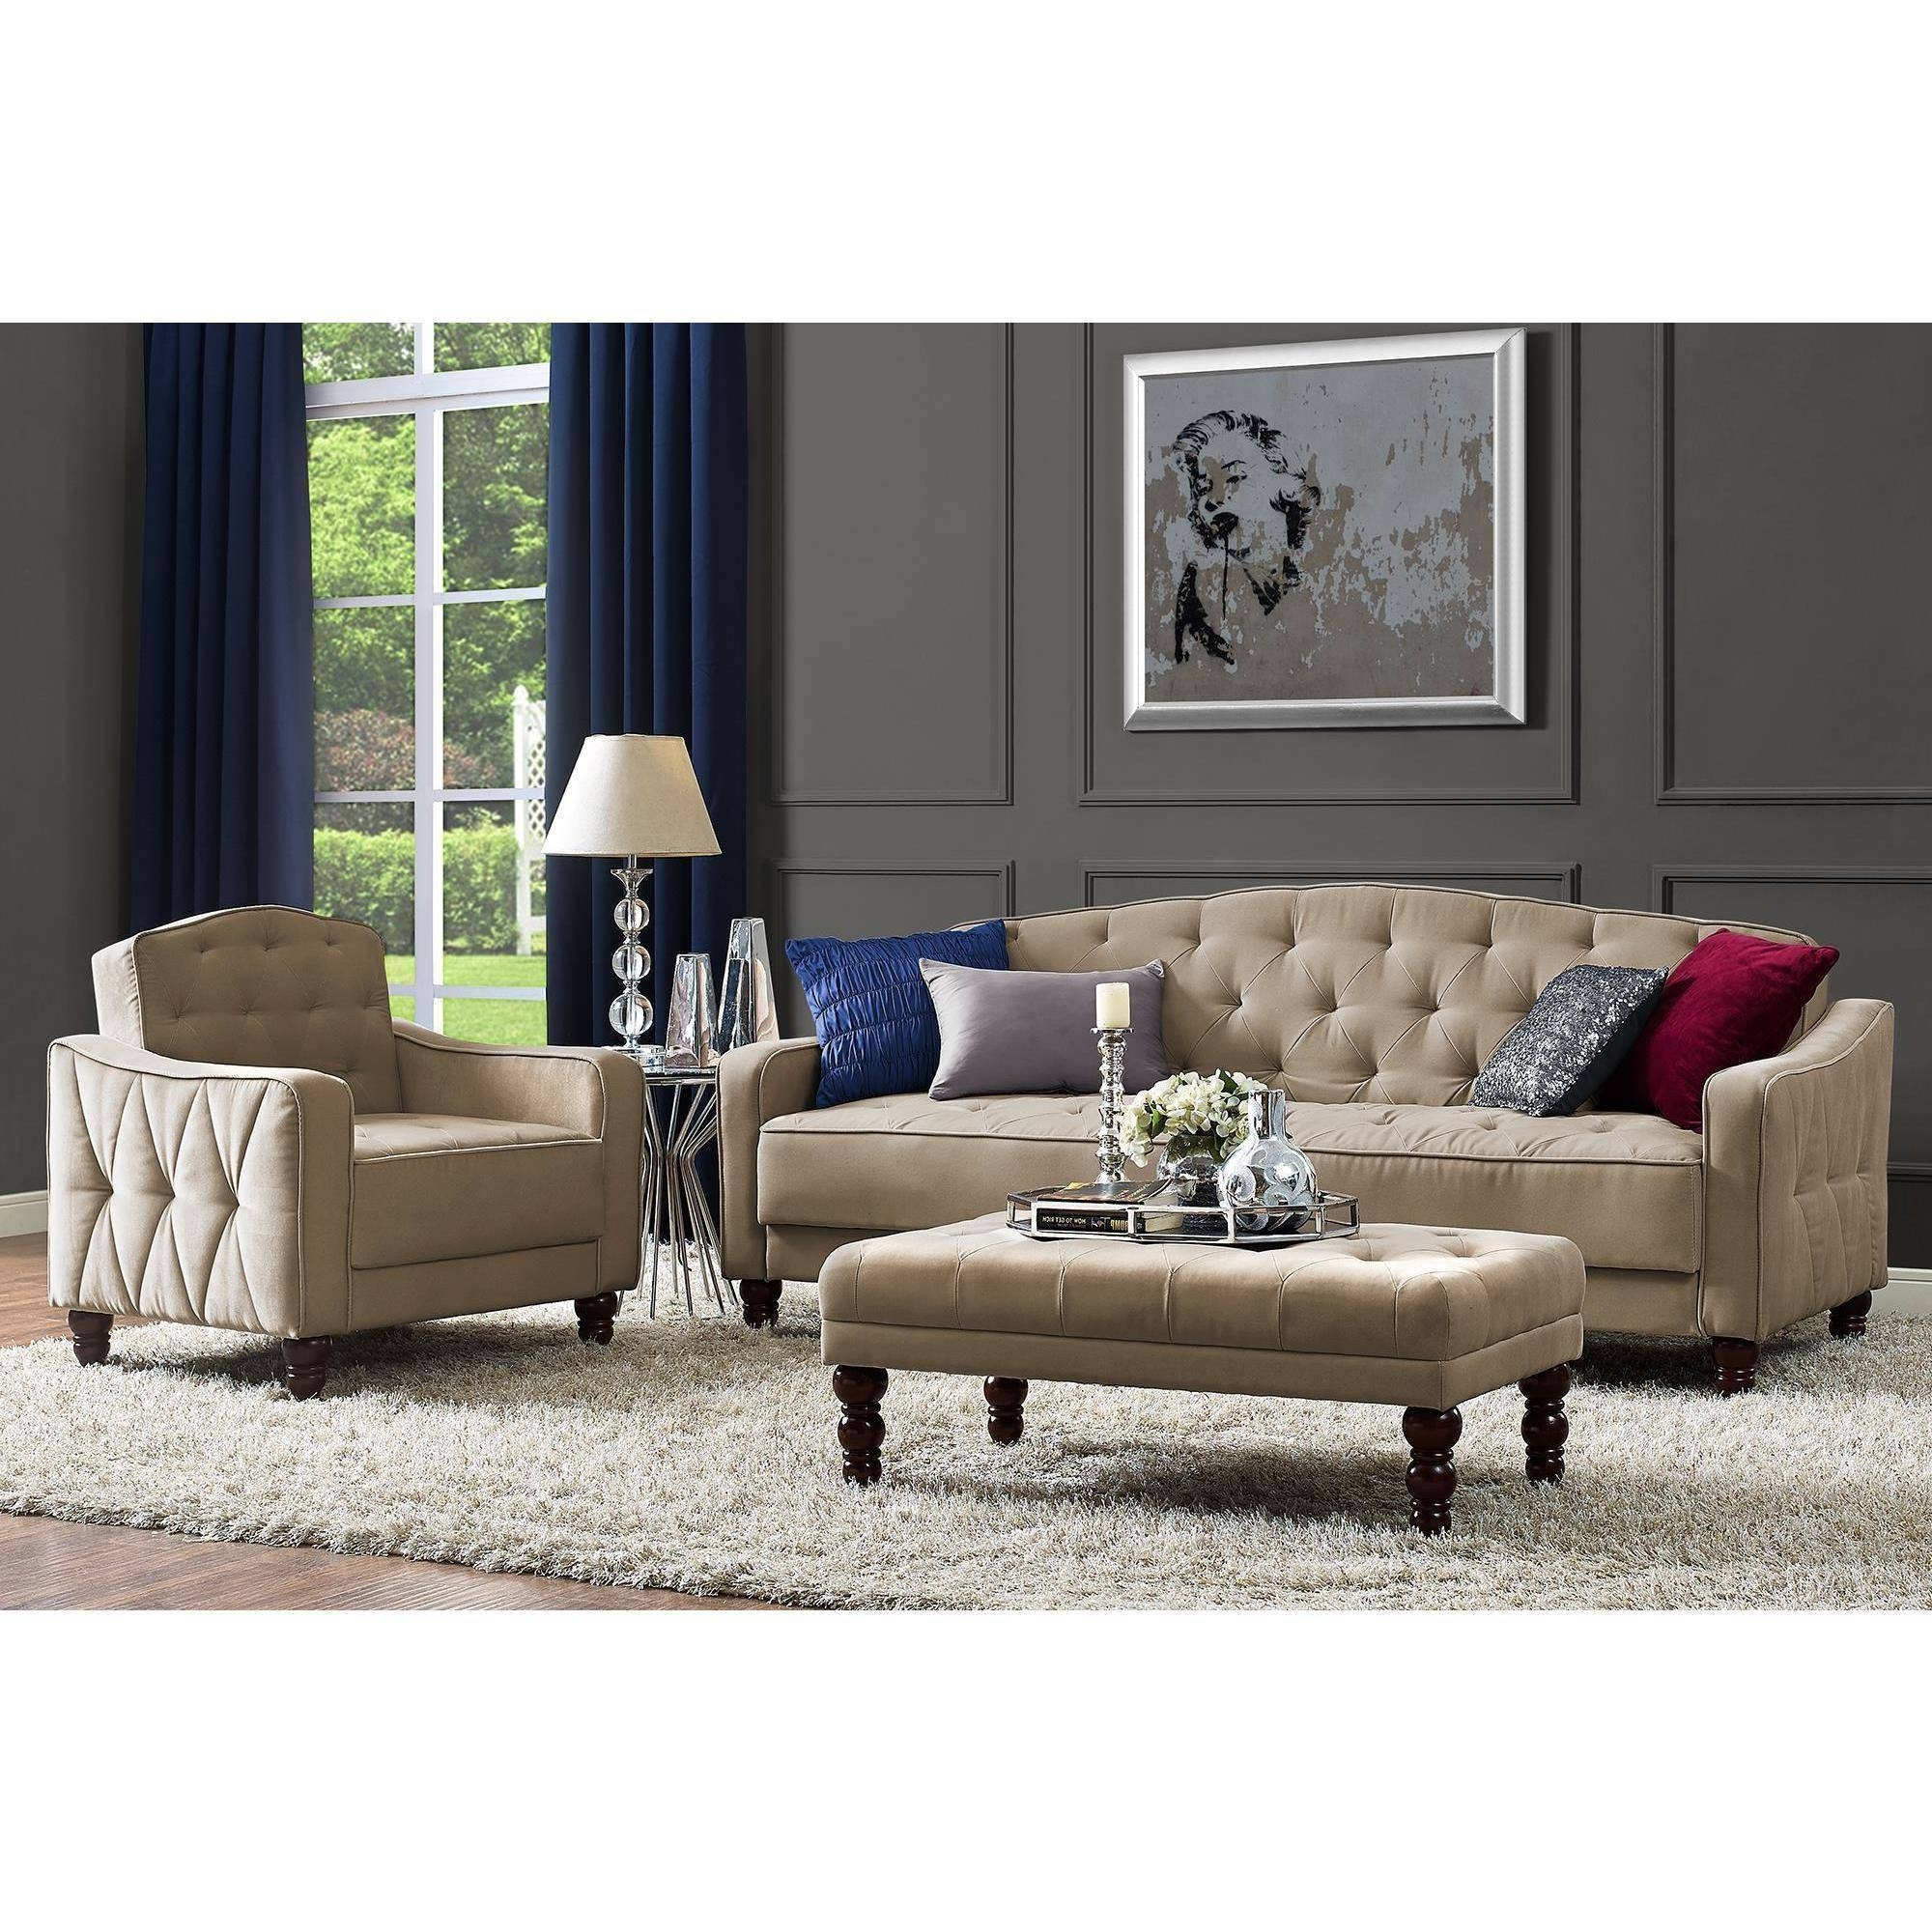 Well Known Greenville Nc Sectional Sofas Within Furniture : Klaussner Hubbard Sofa Chaise Lounge Sofa Vancouver (View 19 of 20)